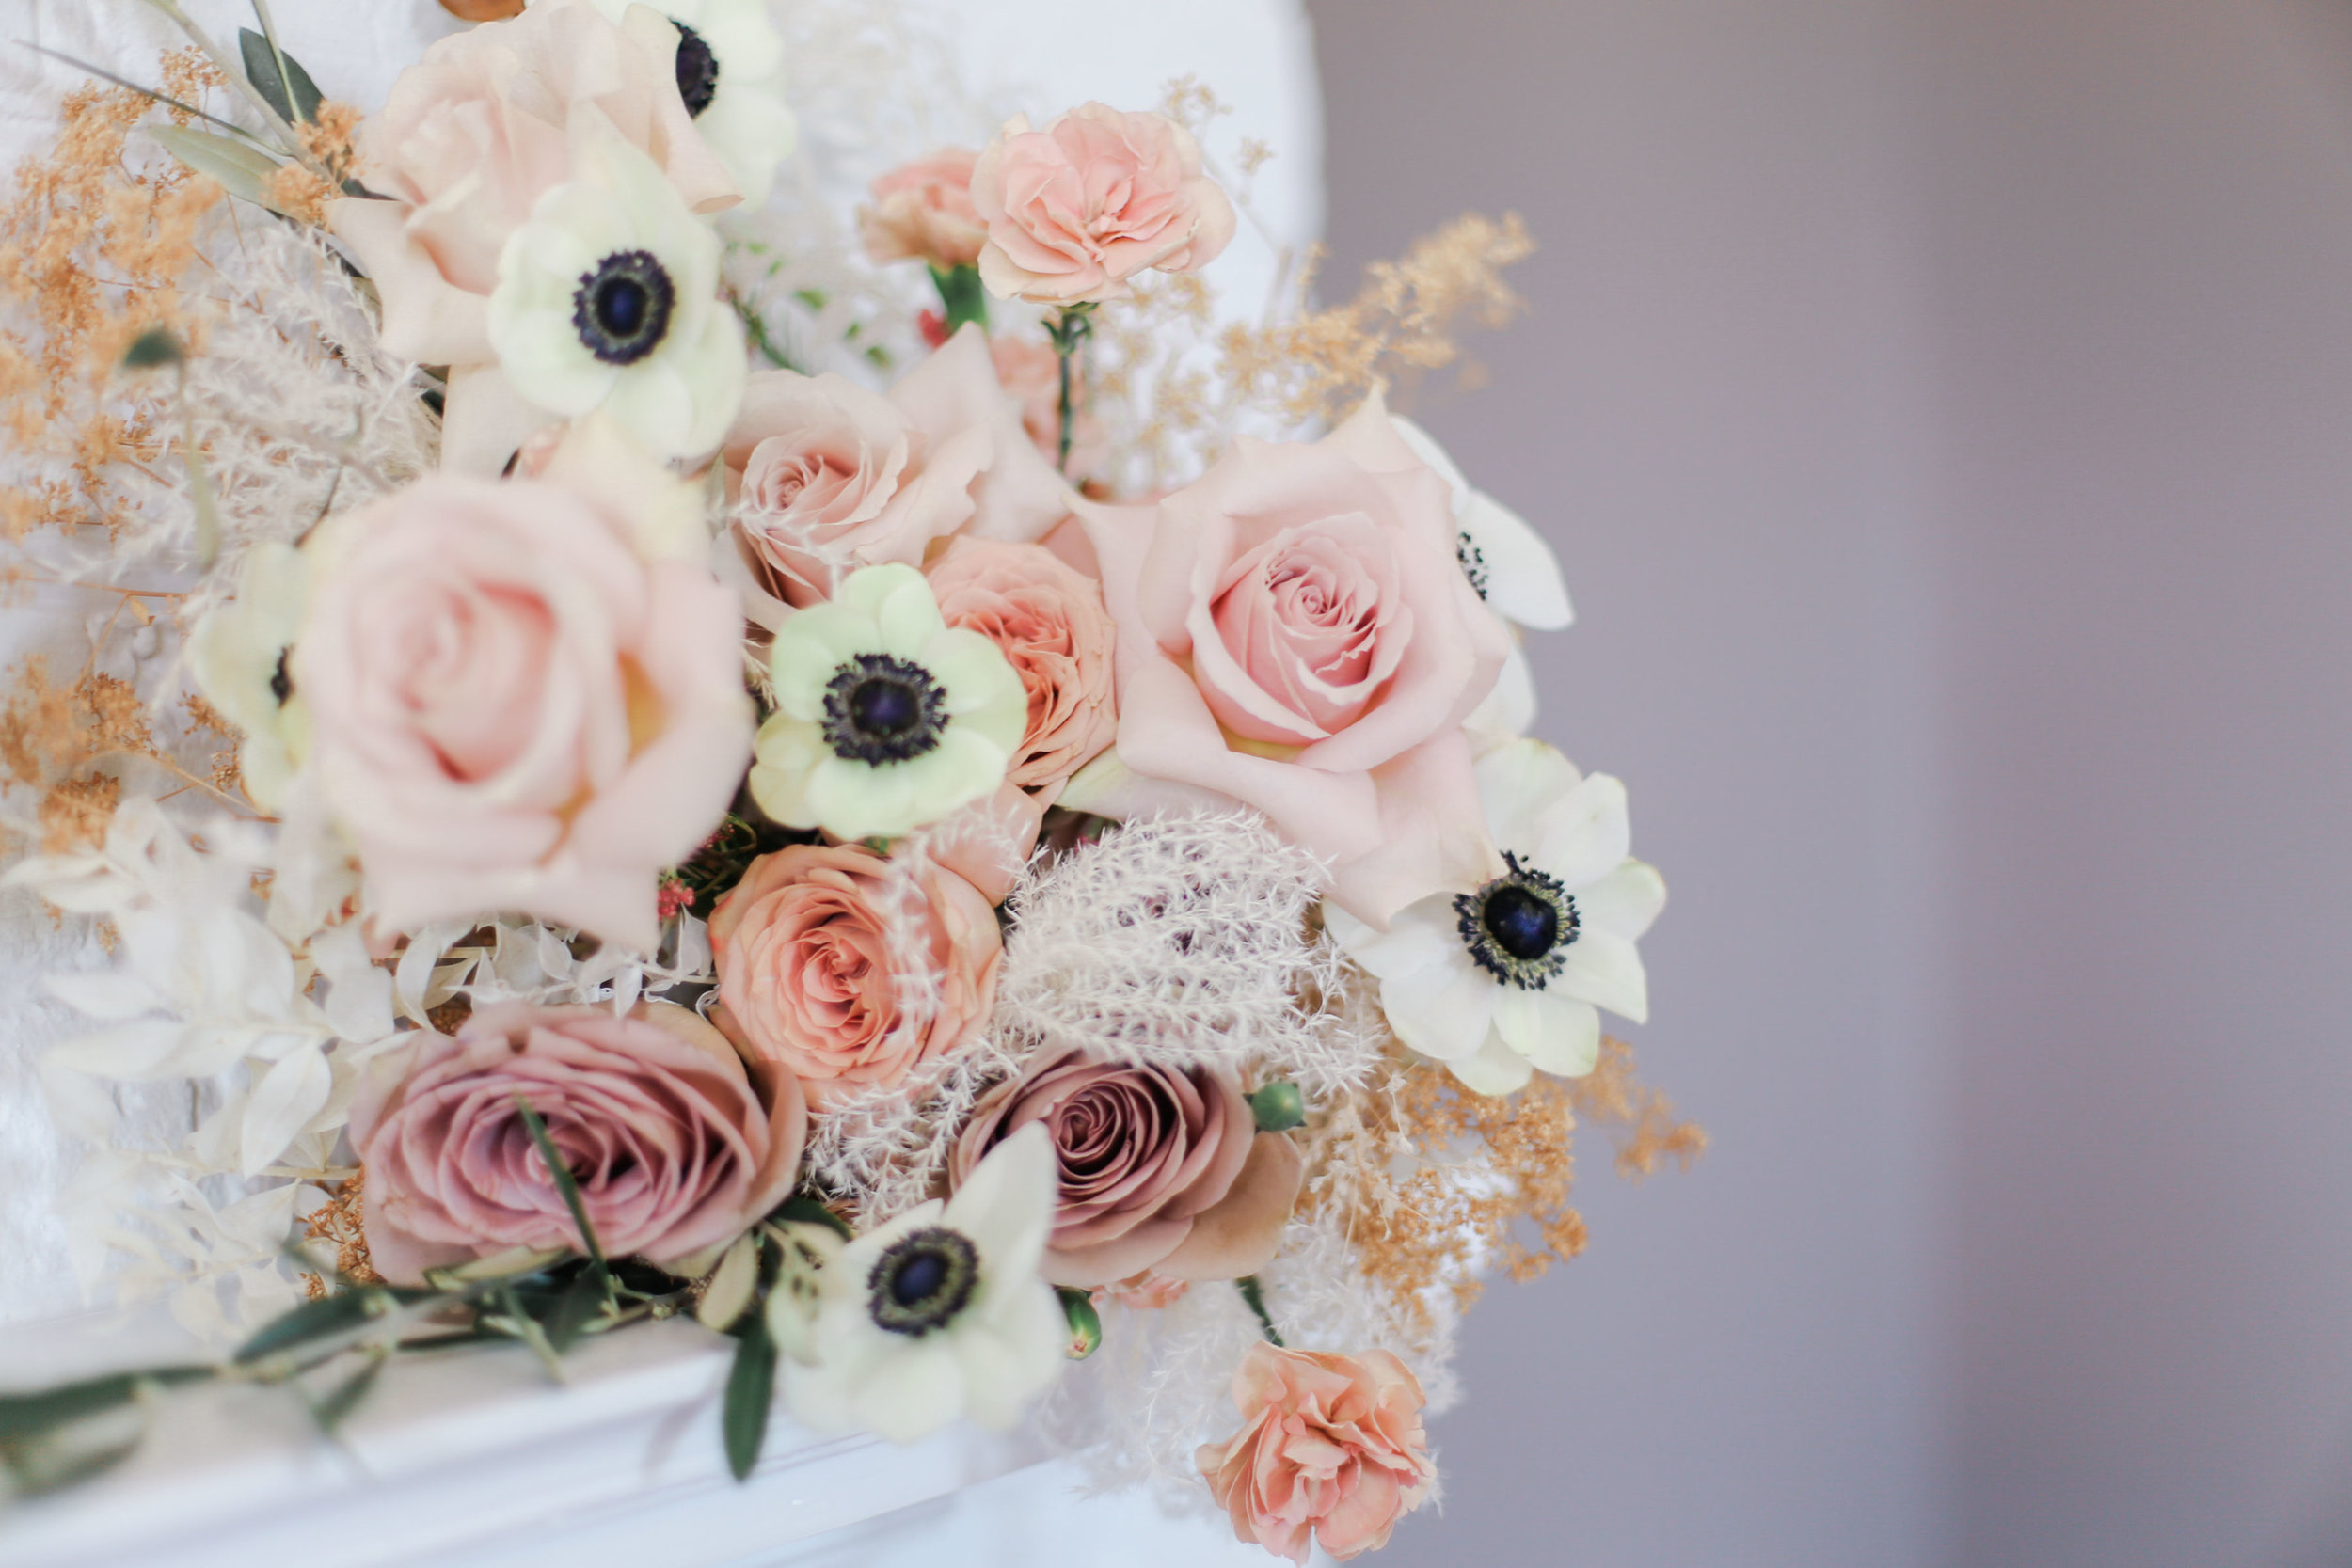 Inspired by the updated aesthetics at Belle Garden Estate, this floral design evokes spring romance and timeless class. Blush roses mix with panda anemones and dried accents to highlight variety in texture.